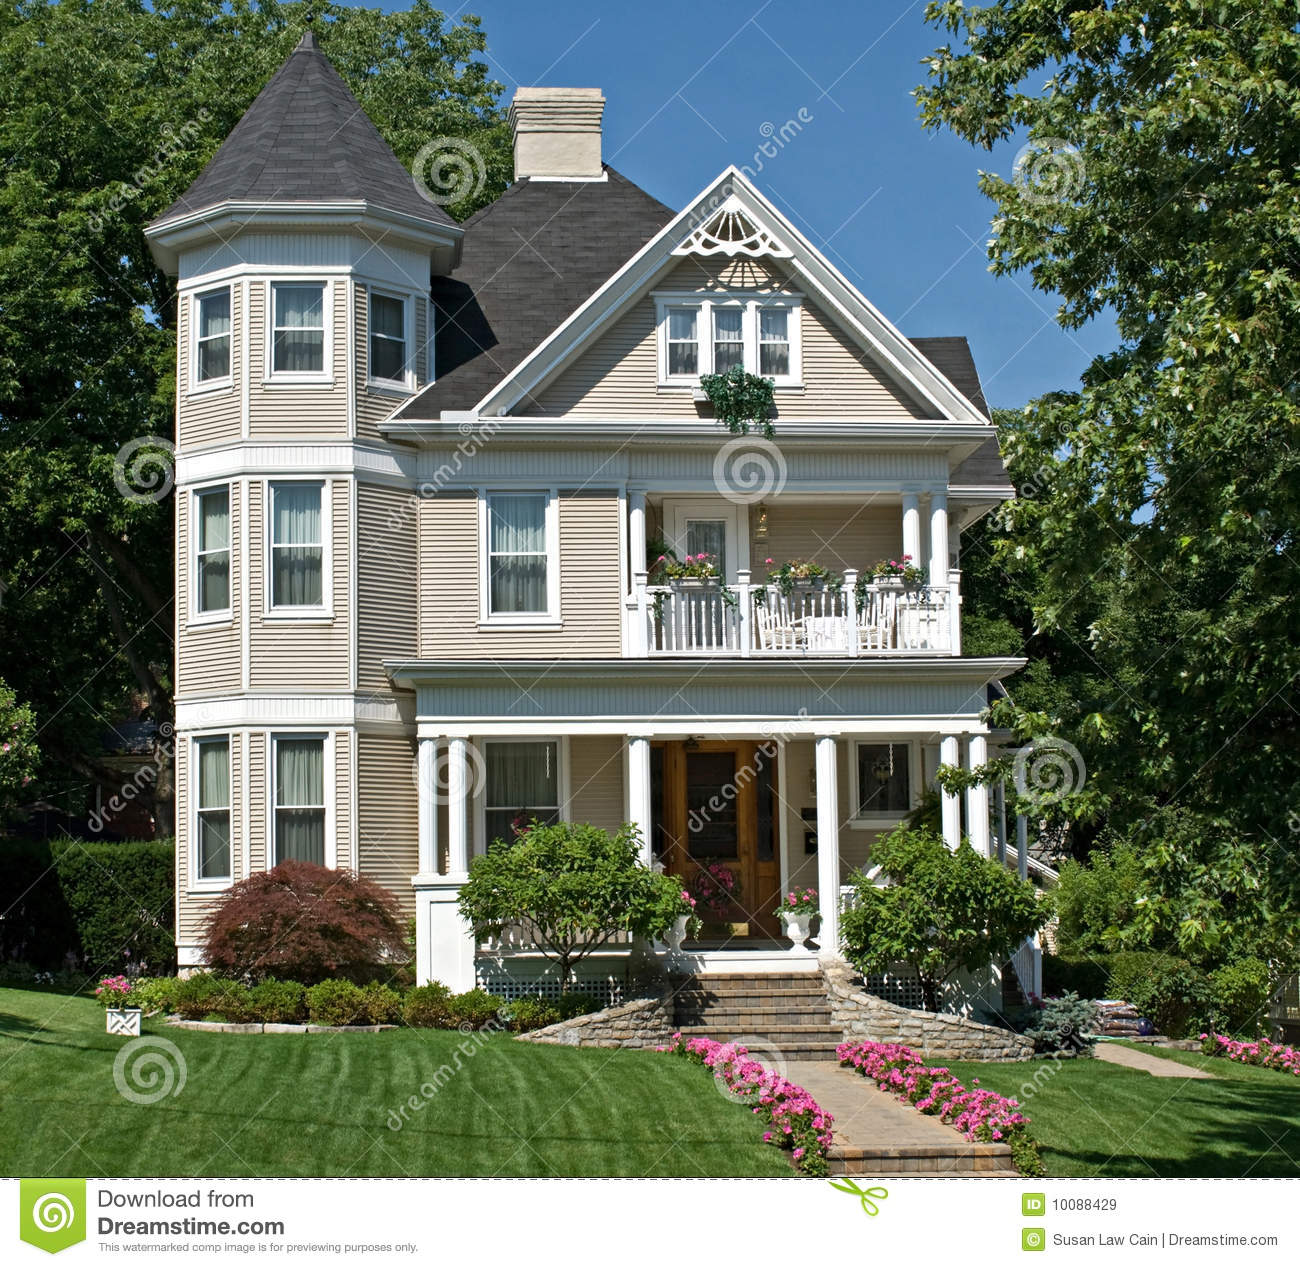 Old victorian house stock image image of green flowers for House turret designs